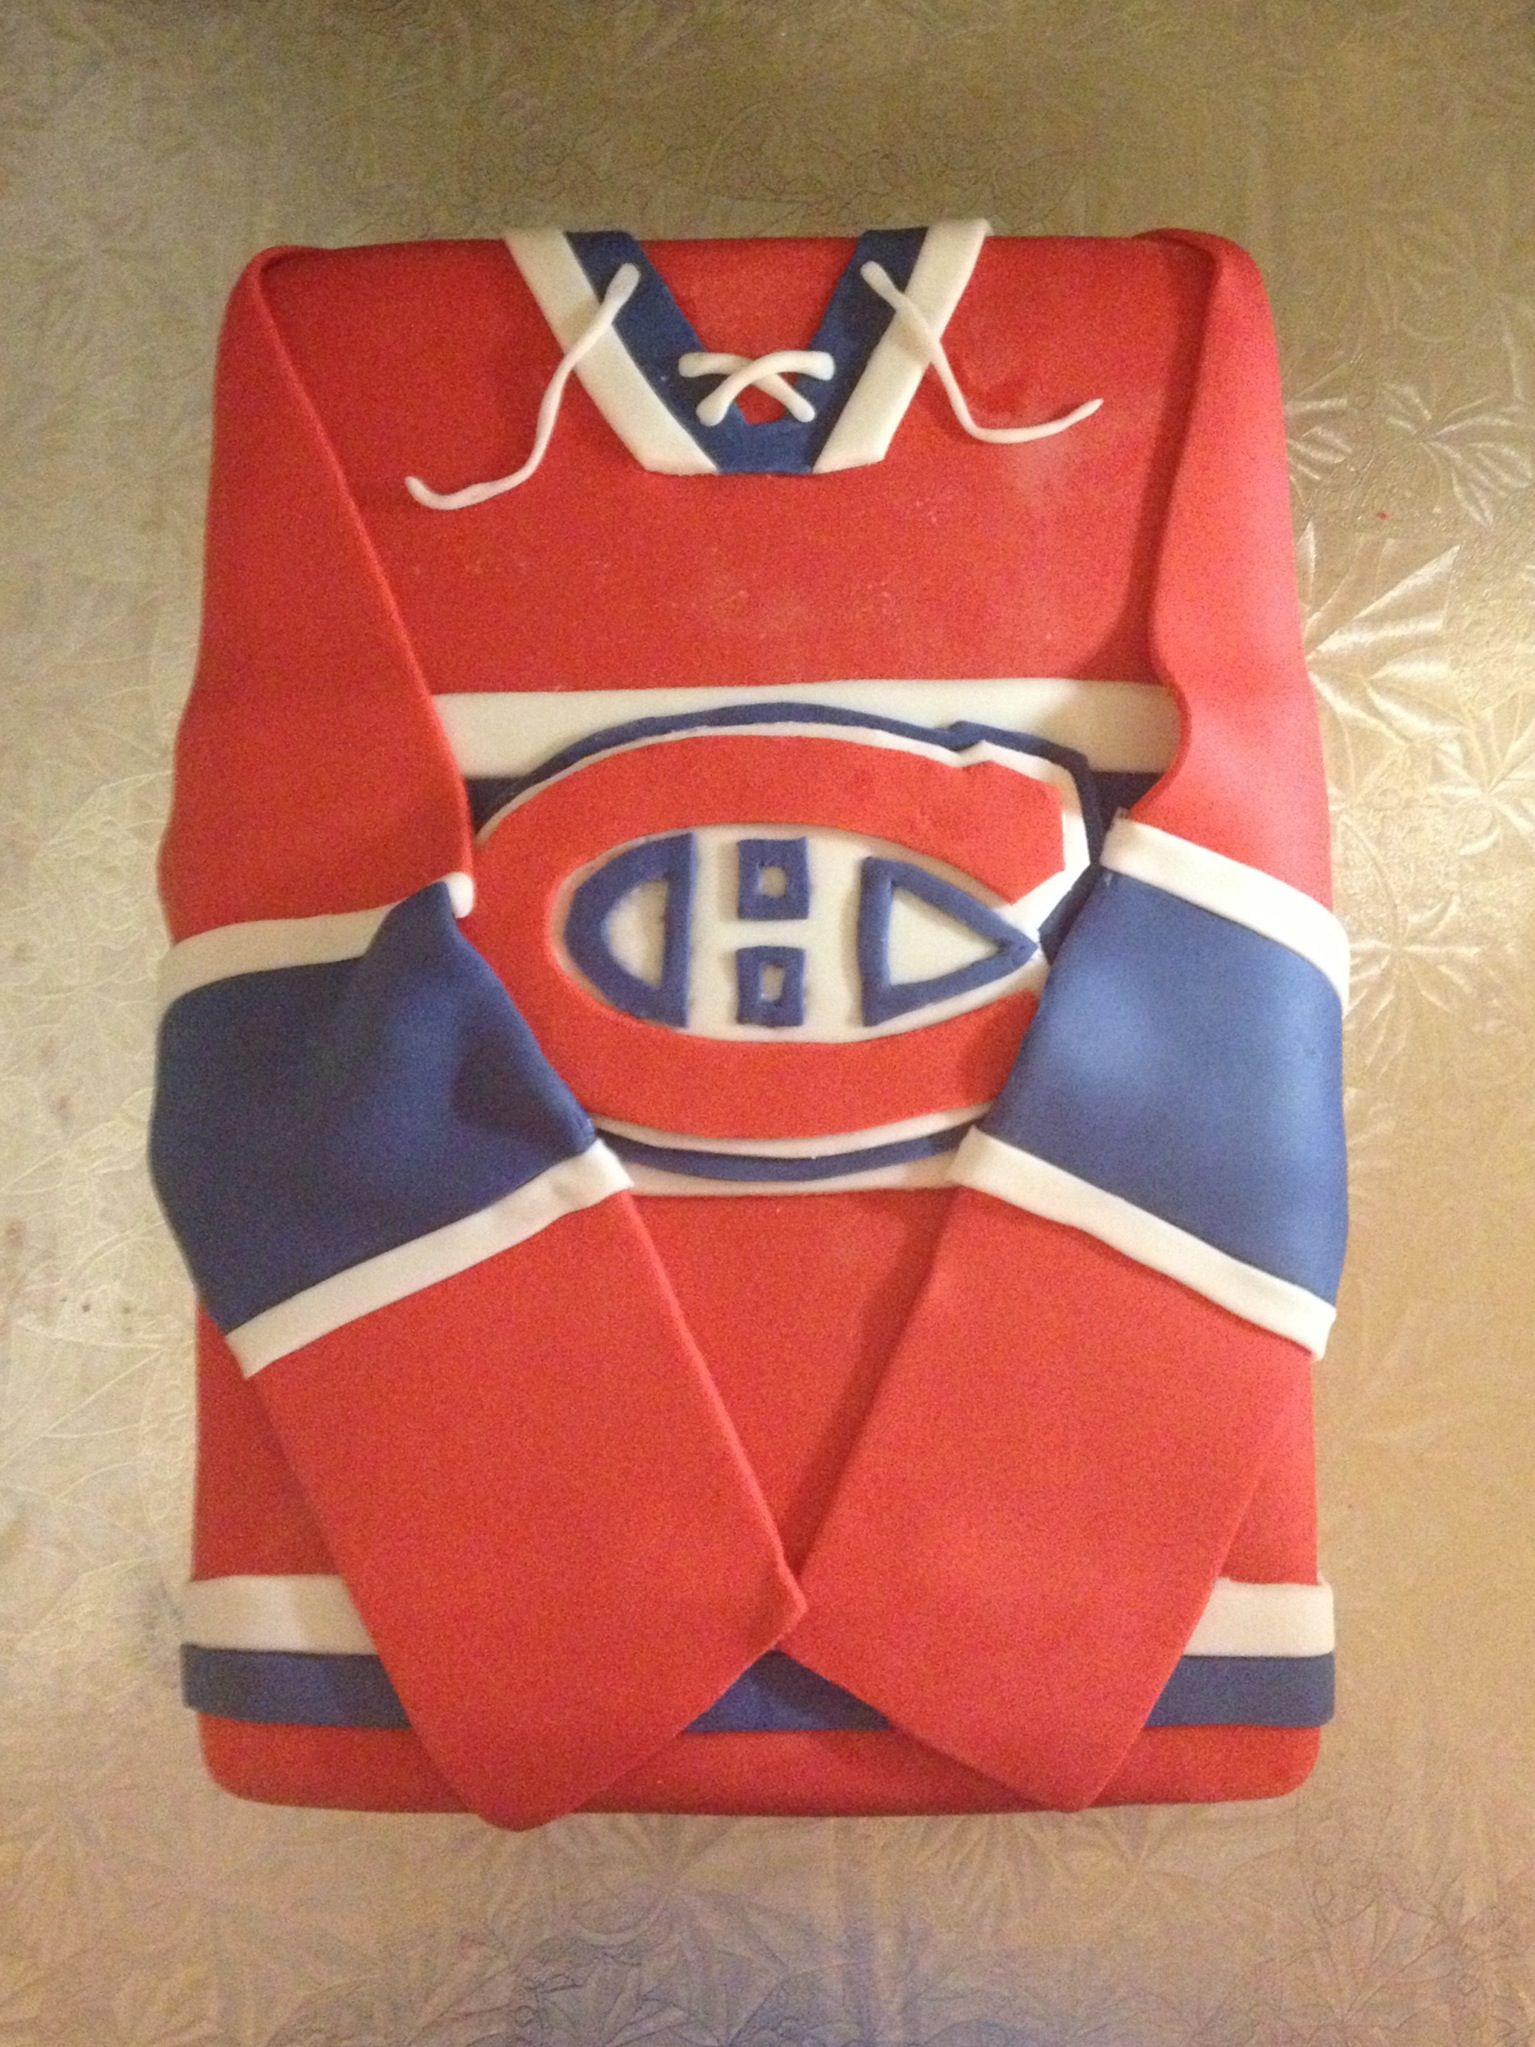 Design your own t shirt montreal - Montreal Canadiens Jersey Cake